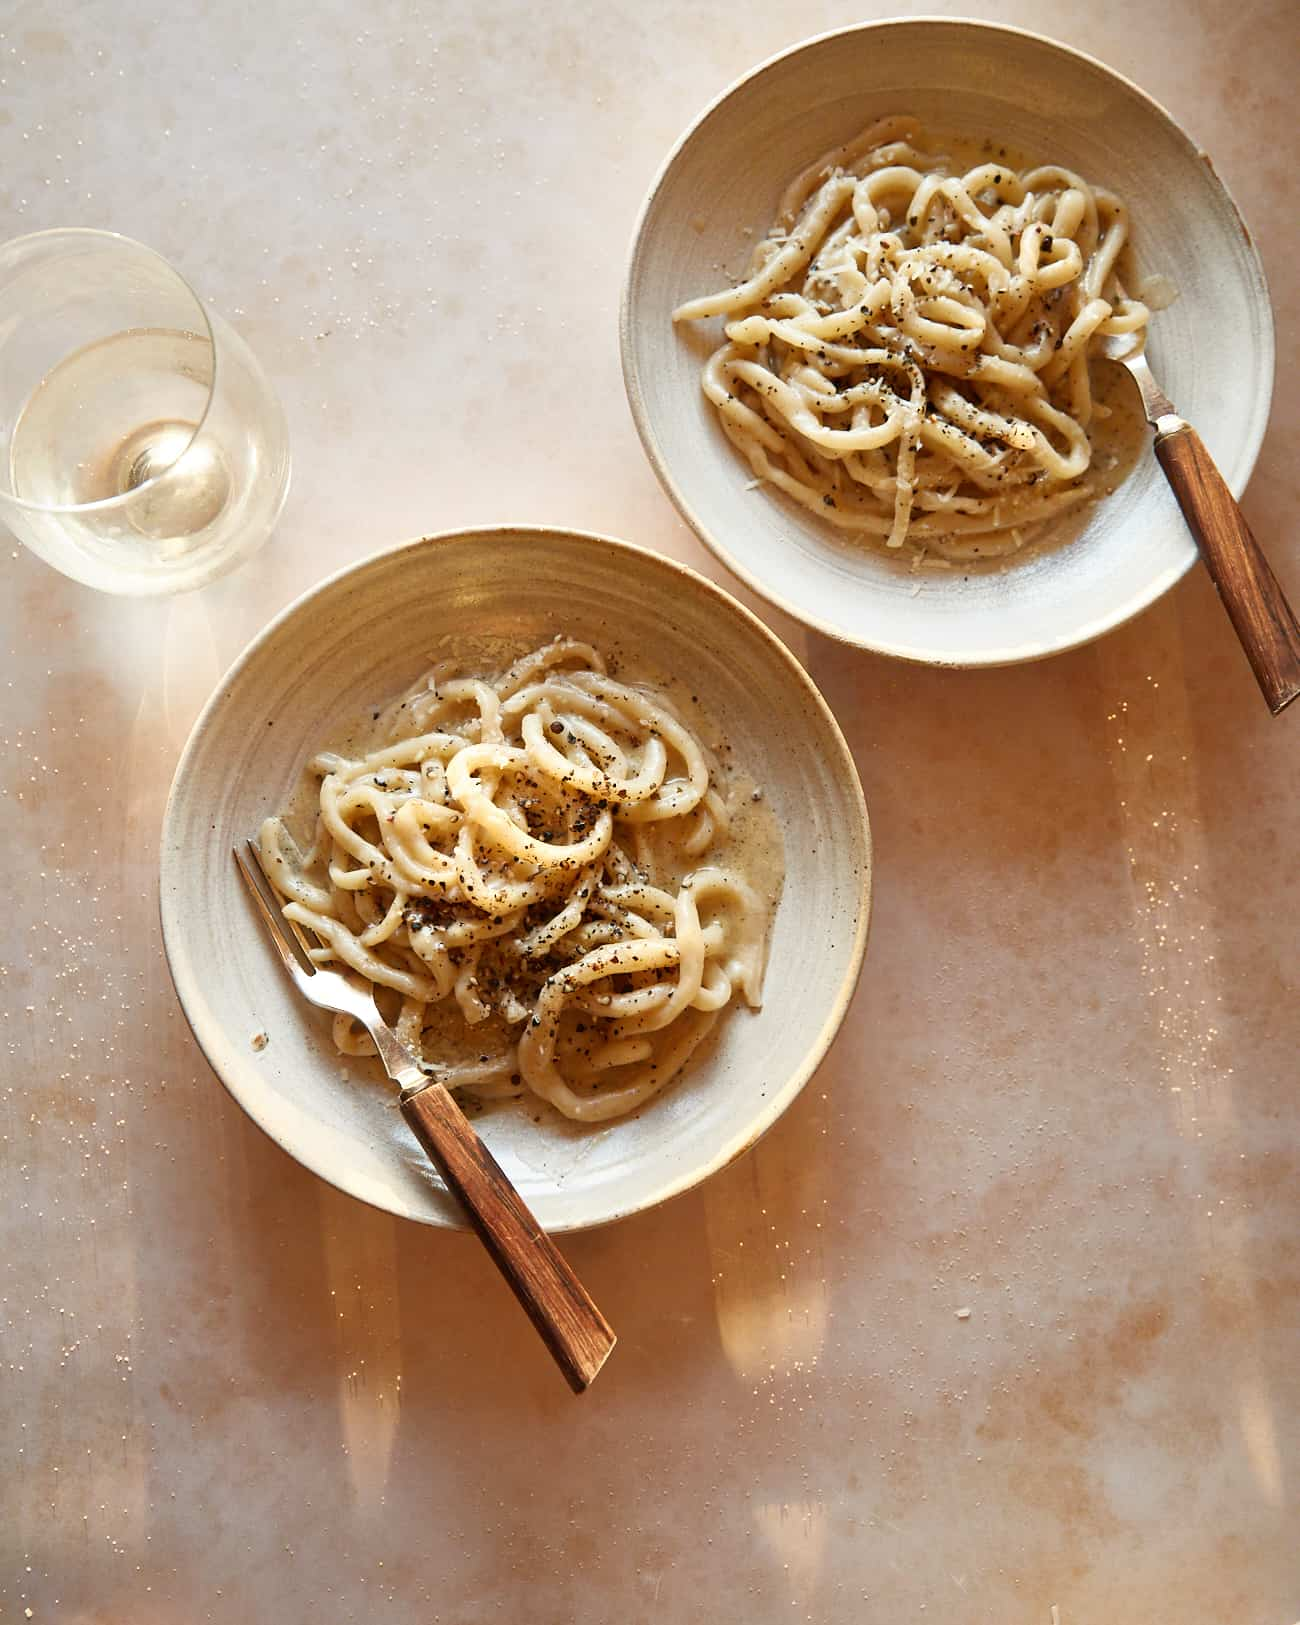 pici cacio e pepe in two bowls with a glass of wine